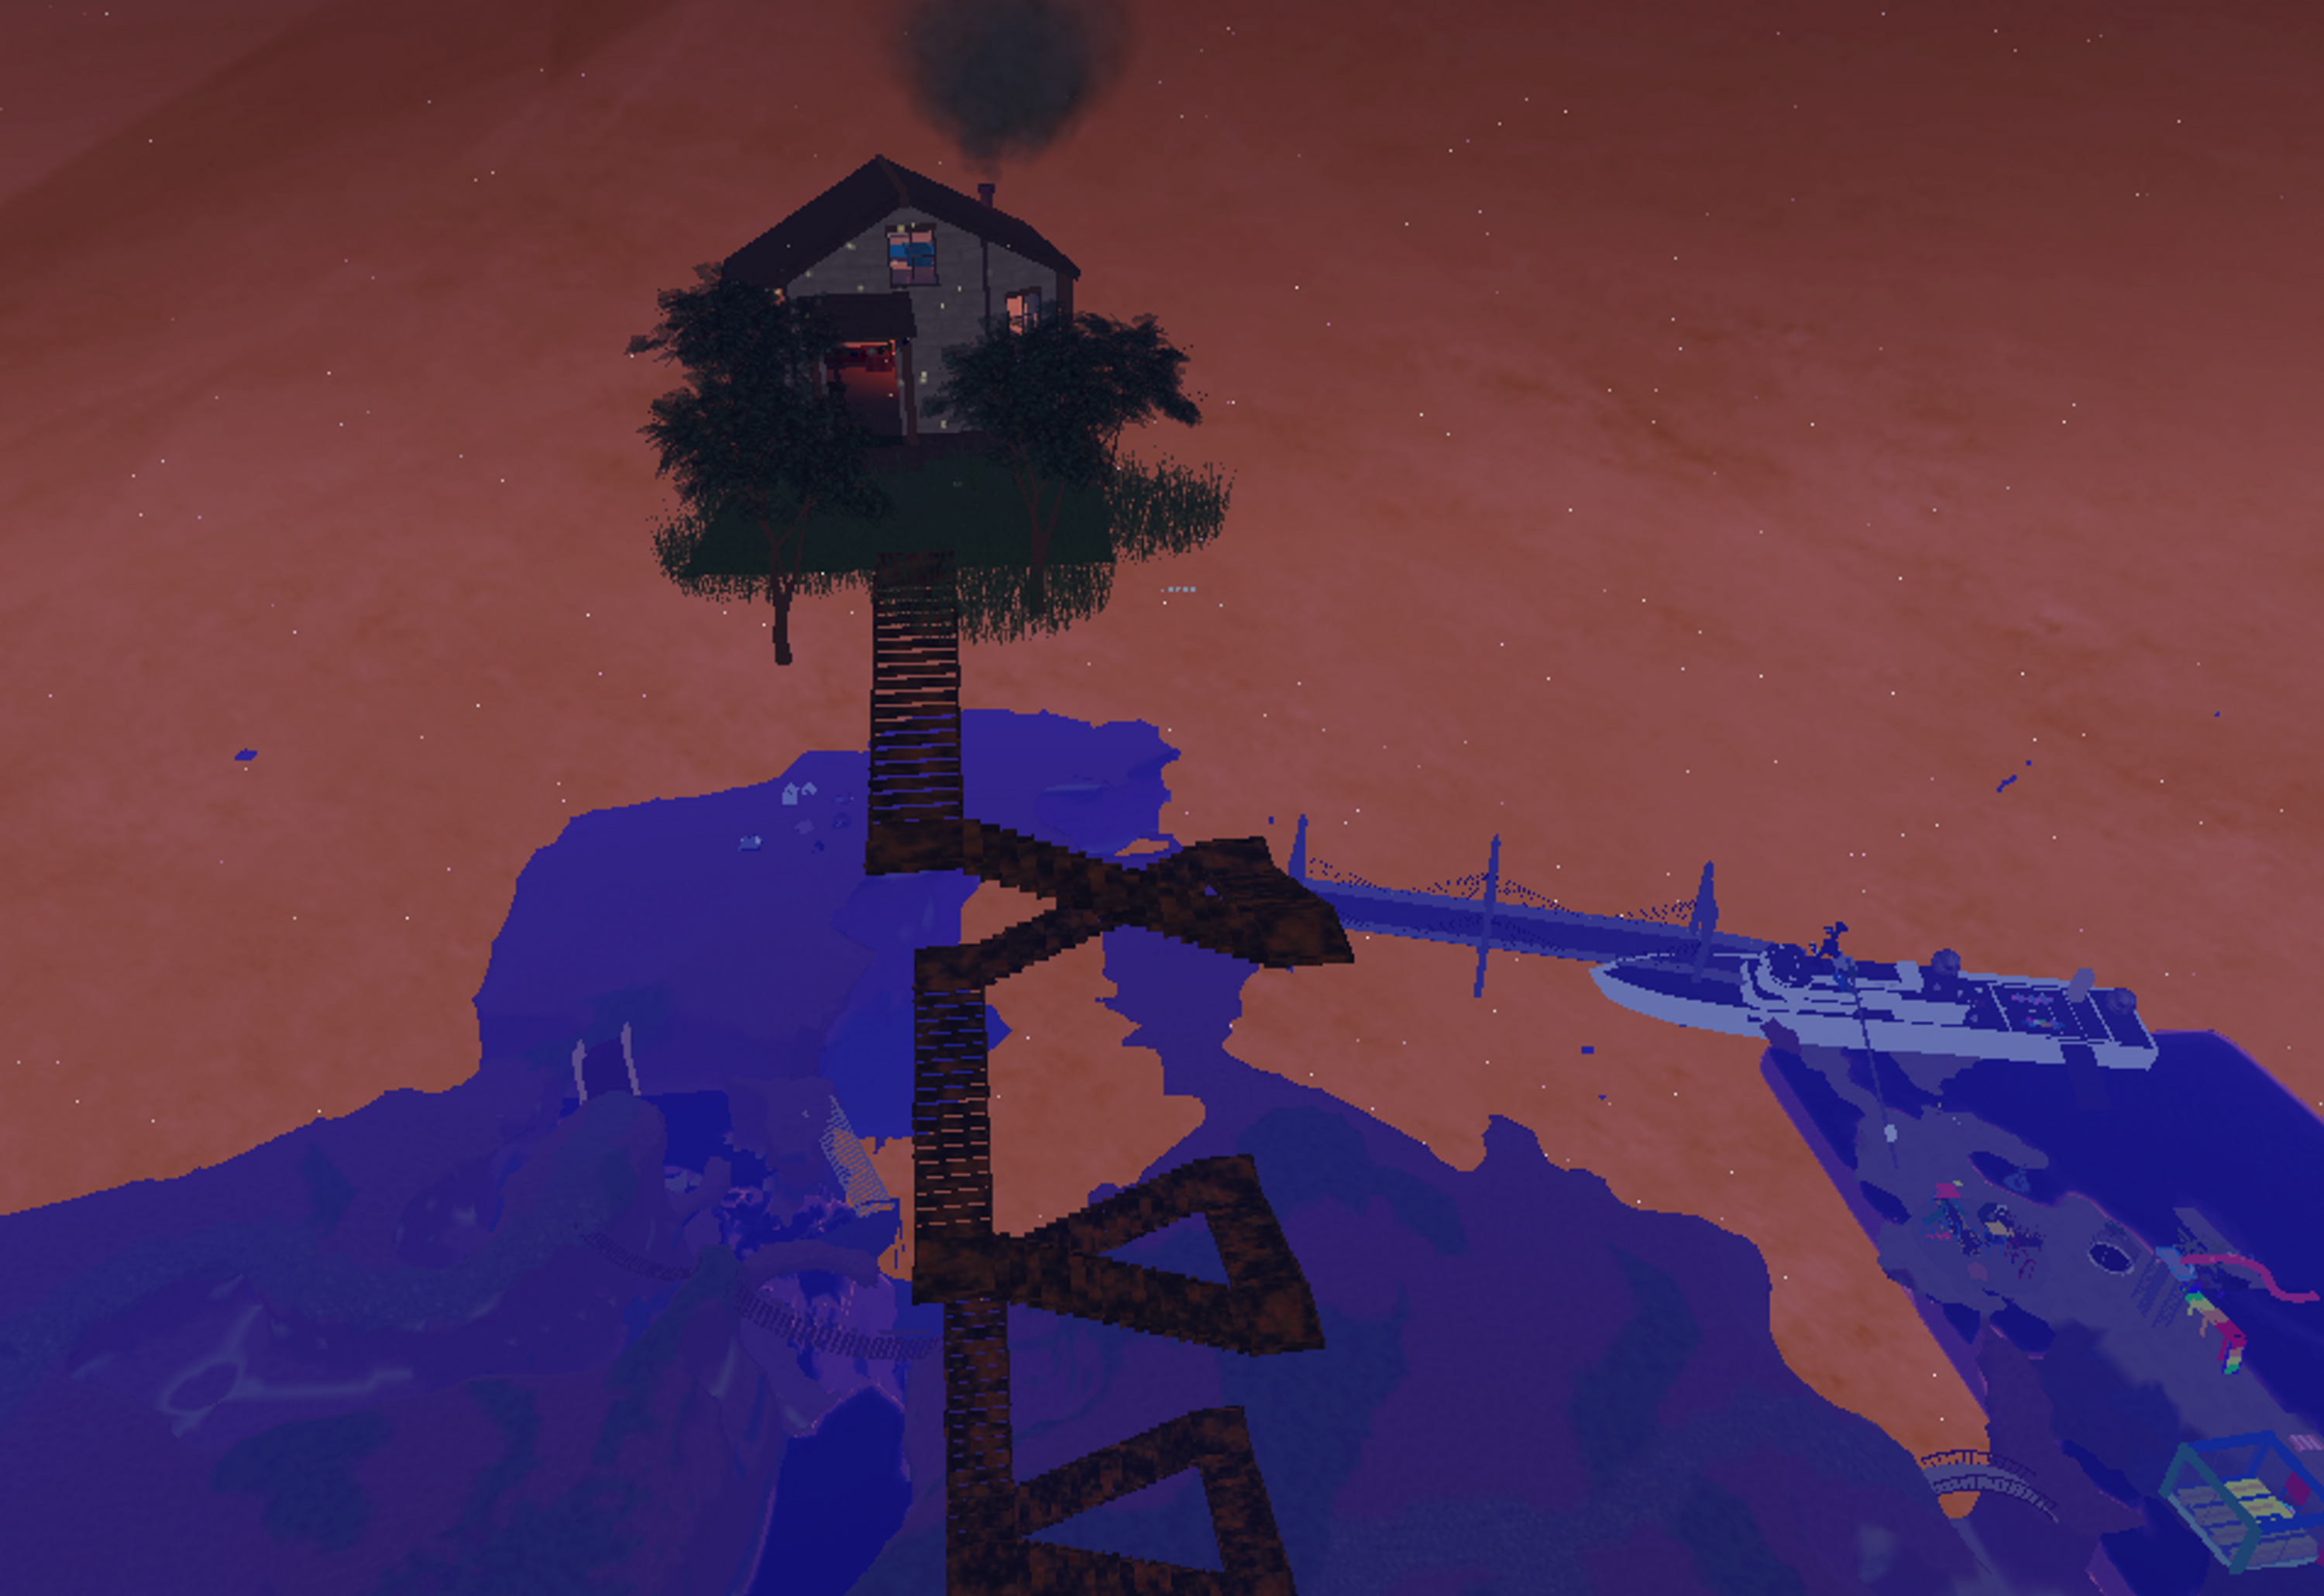 A cabin floating at the top of spiral staircase. You can see a boat and a bridge far below